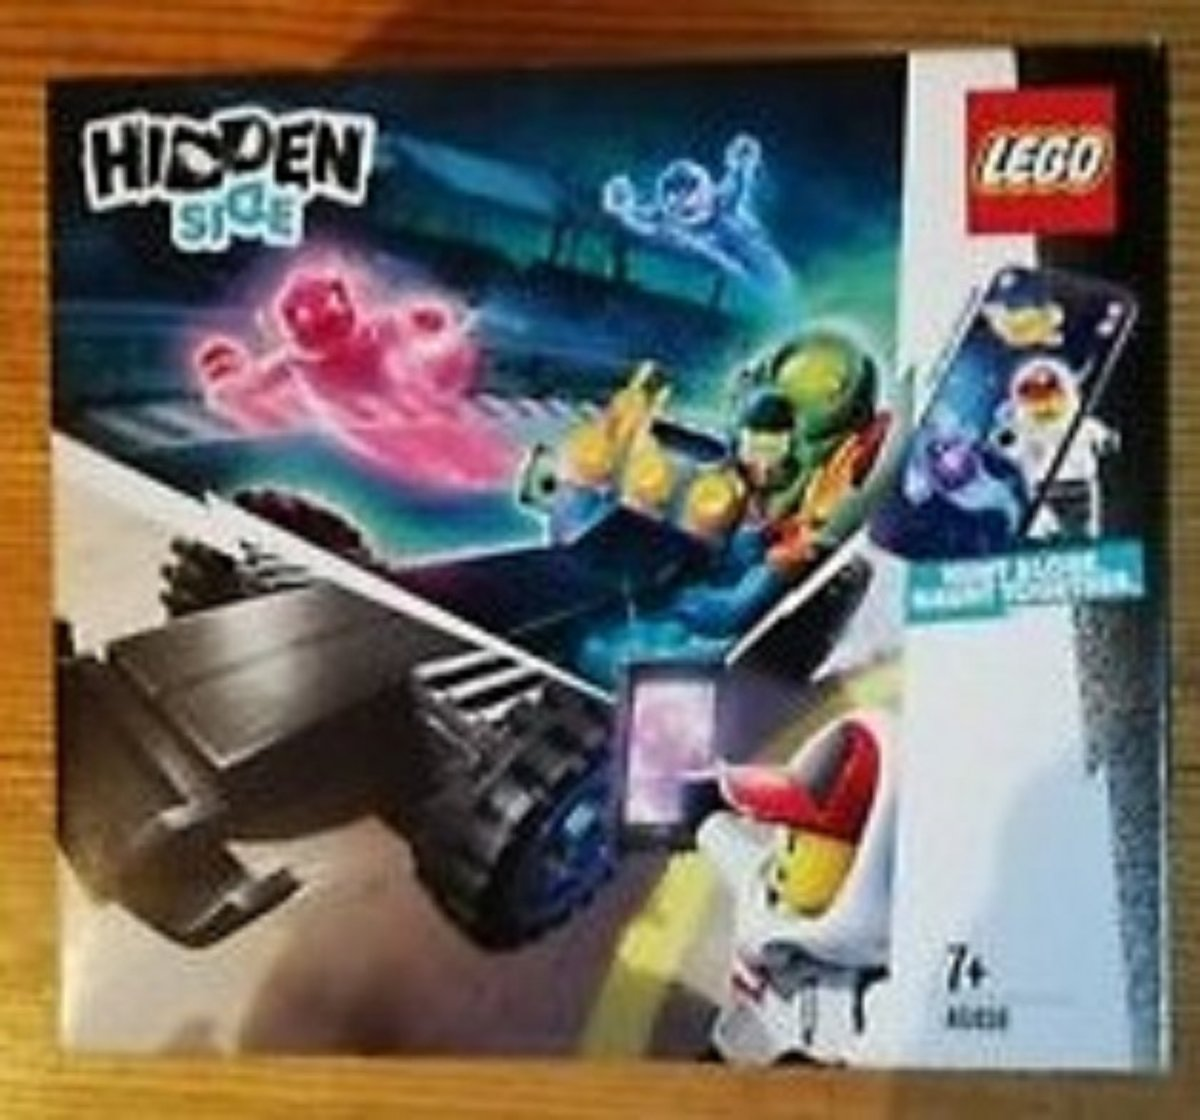 Lego 40408 HIDDEN SIDE Dragracer